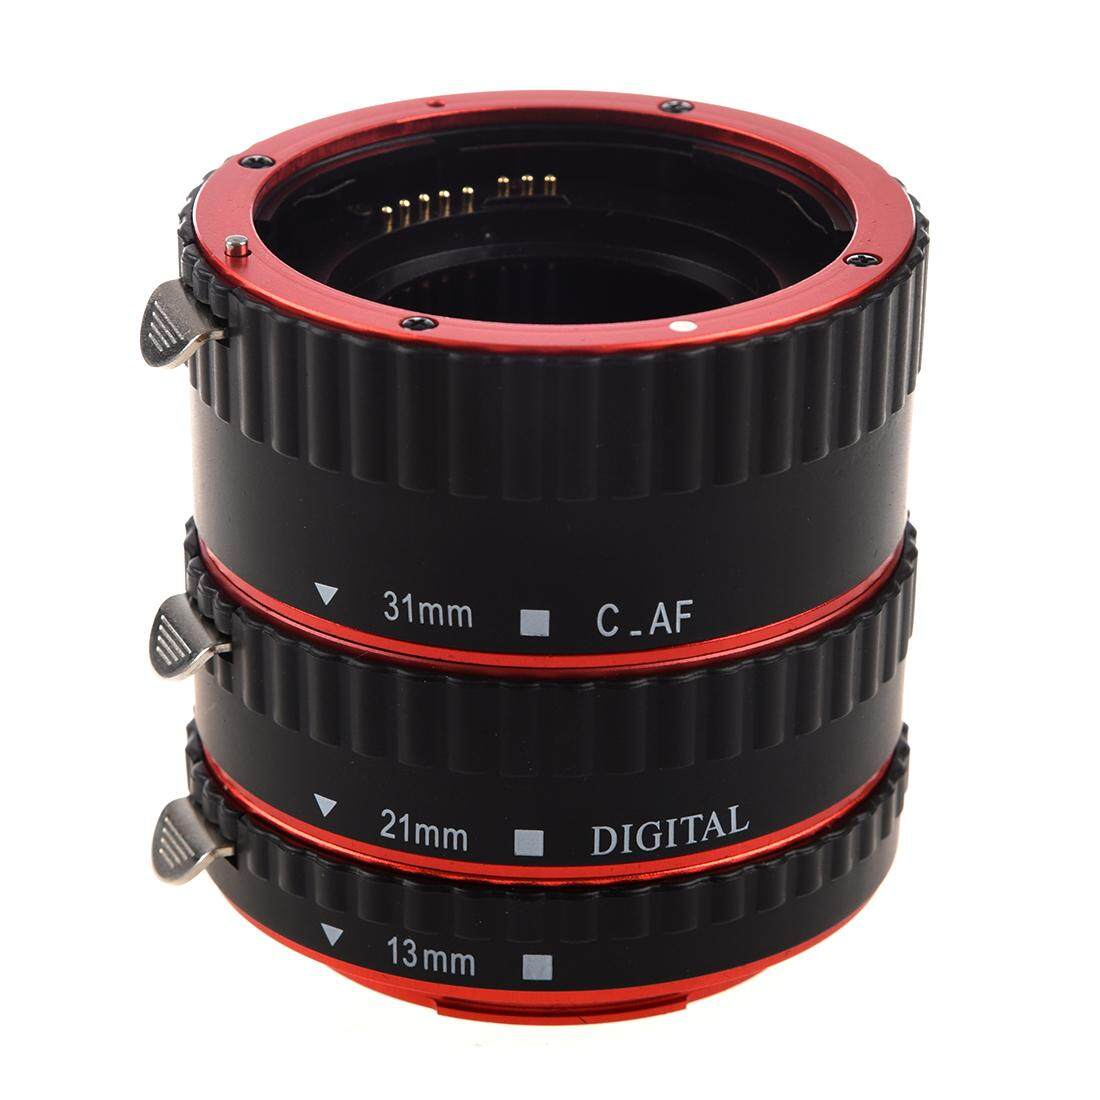 Colorful Metal TTL & Autofocus AF Macro Extension Tube Ring for all Canon EF and EF-S lenses Canon EOS EF EF-S 60D 7D 5D II 550D (Red and black)